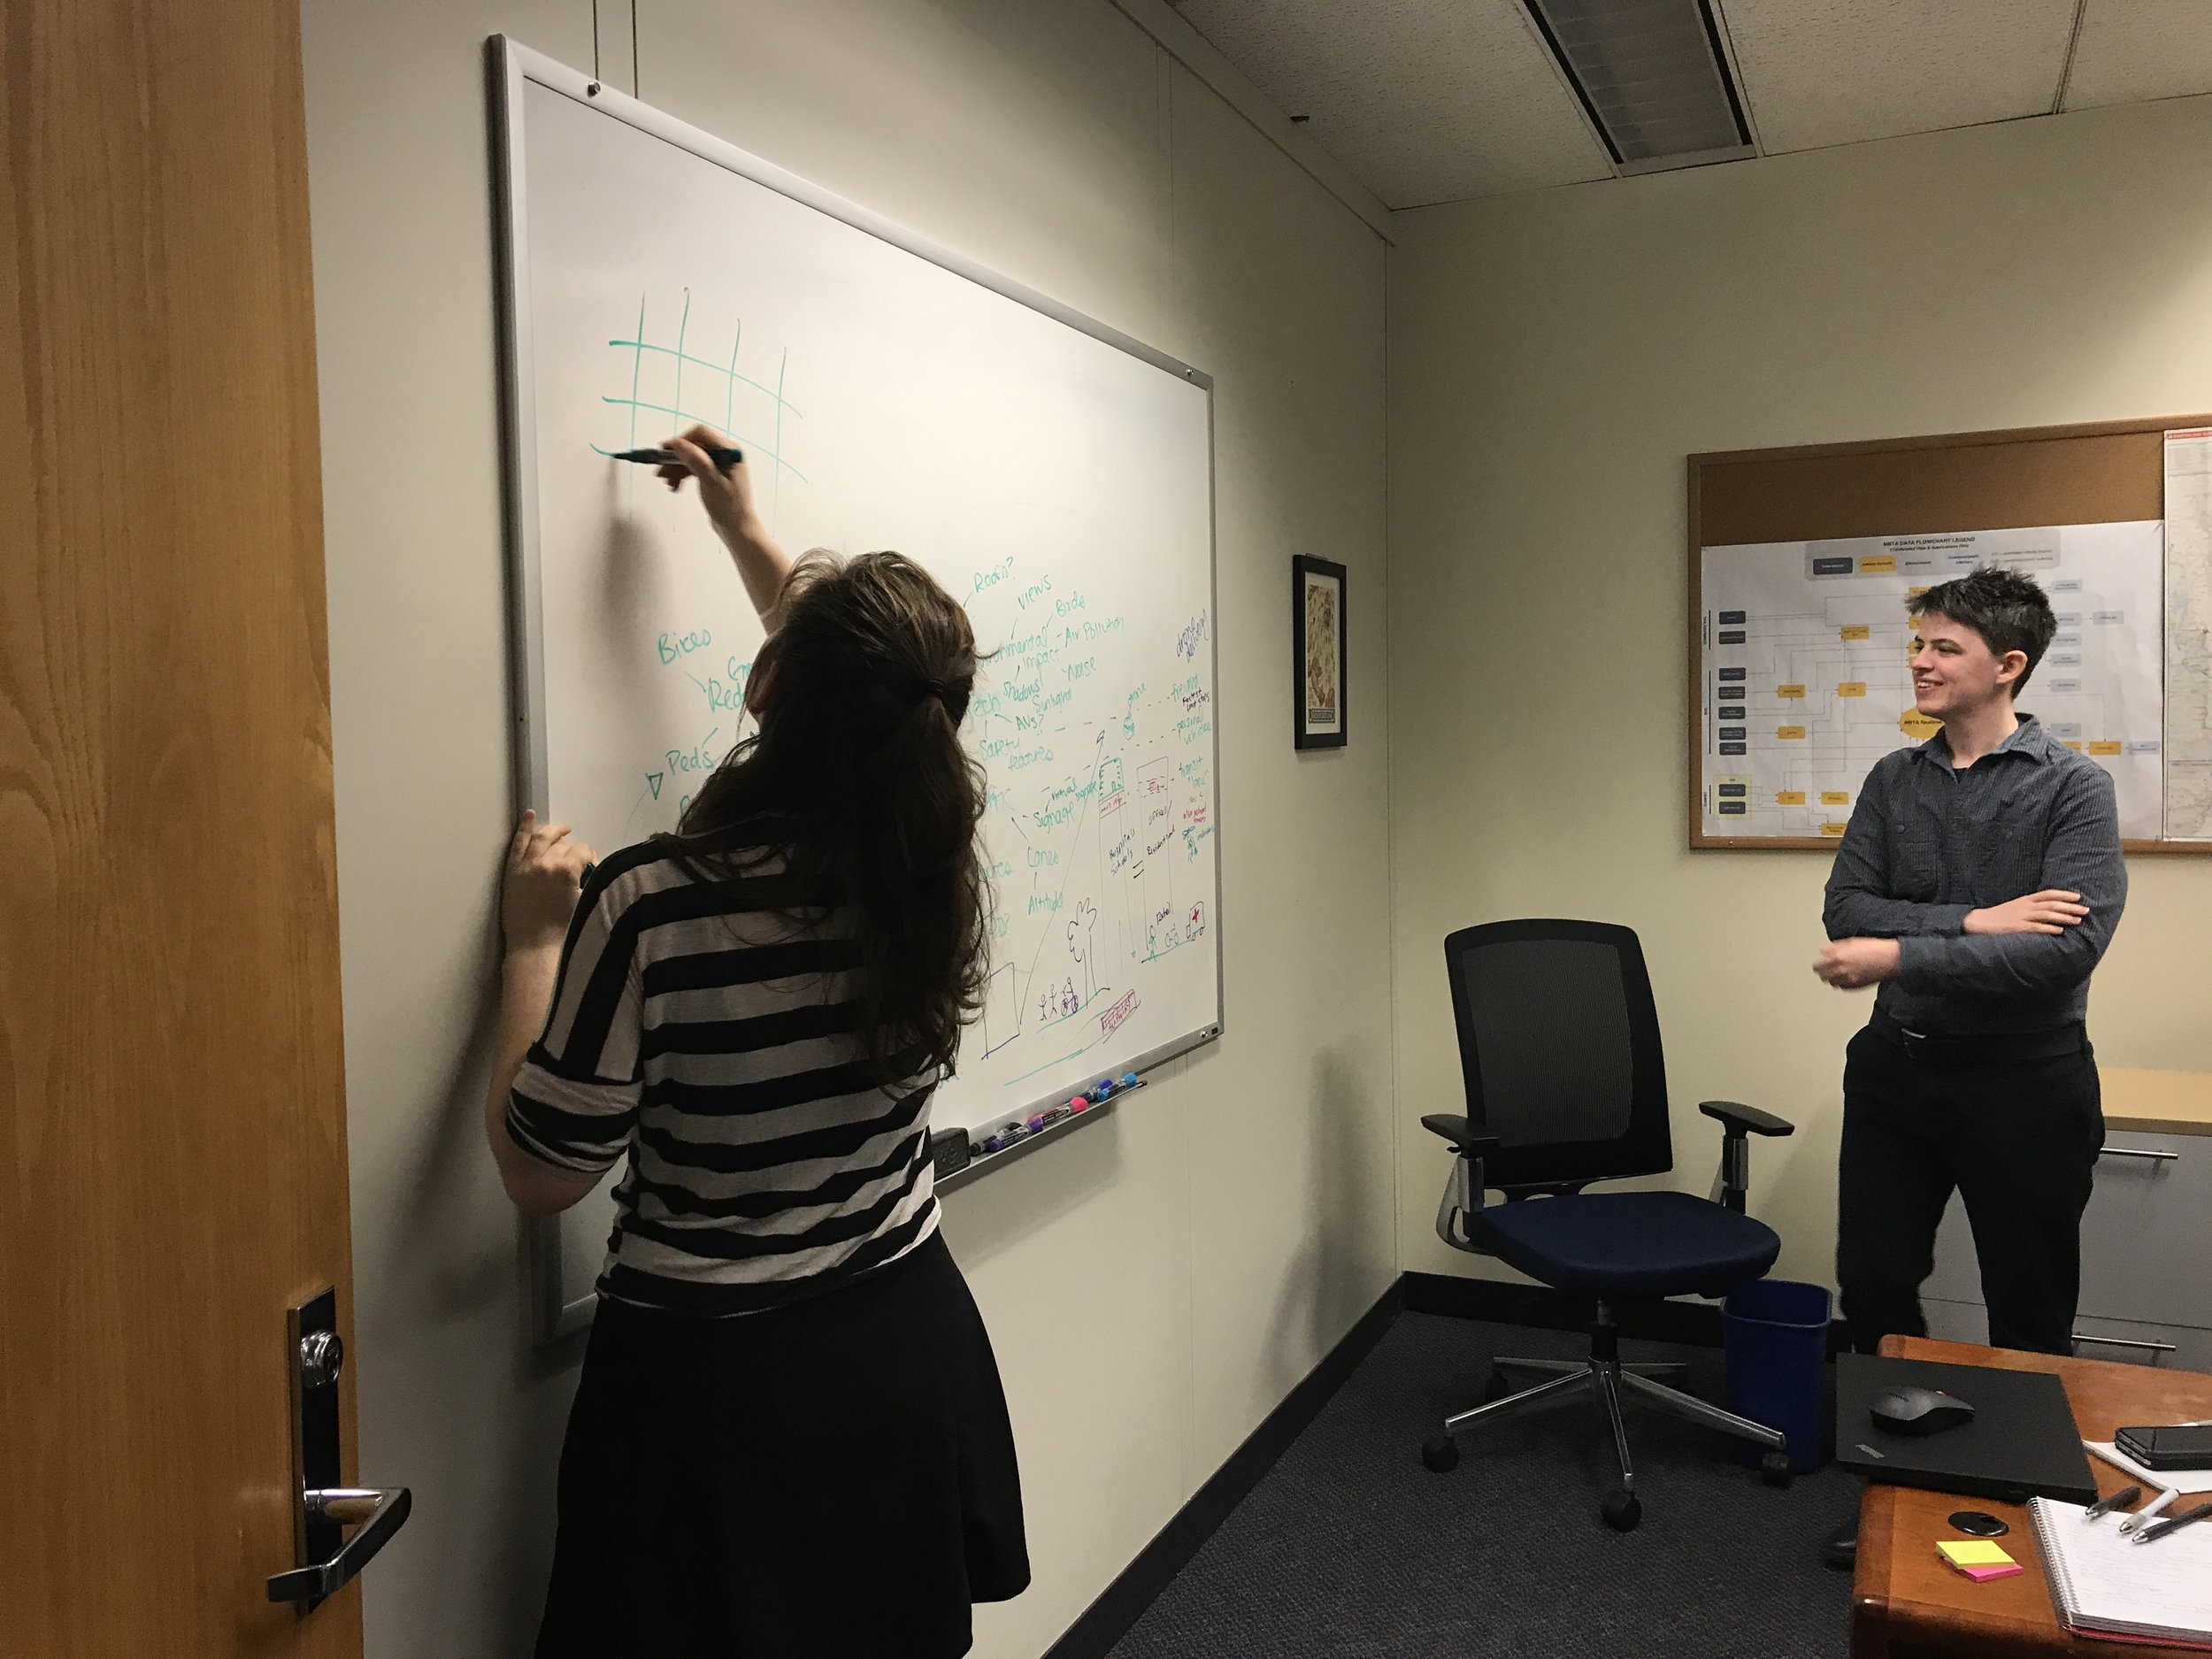 Two OPMI staff members brainstorming a problem